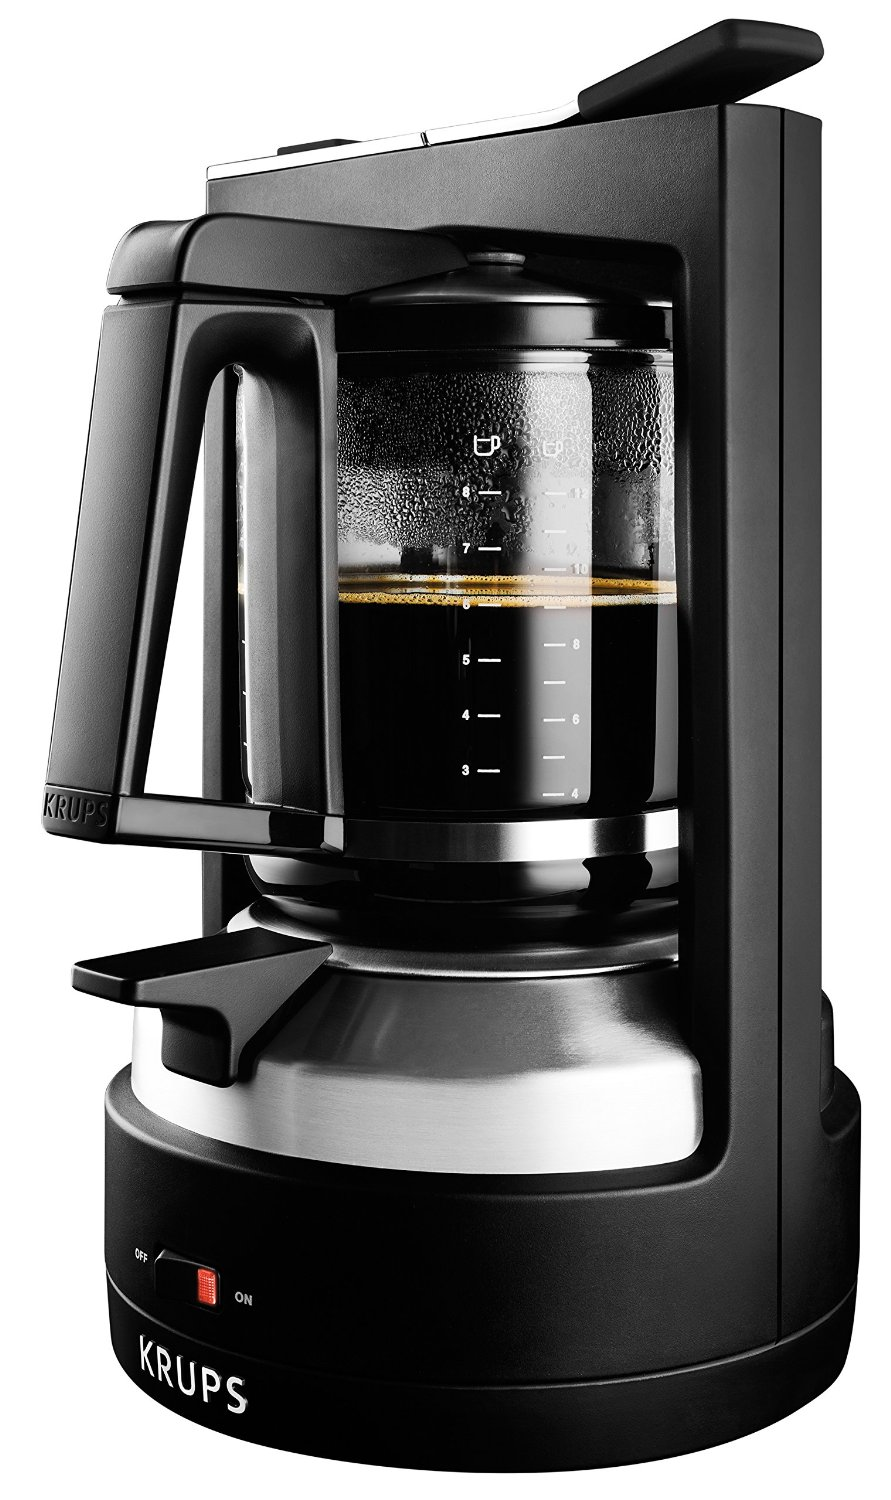 2016 Best Drip Coffee Maker Product Reviews Amp Best Of 2017